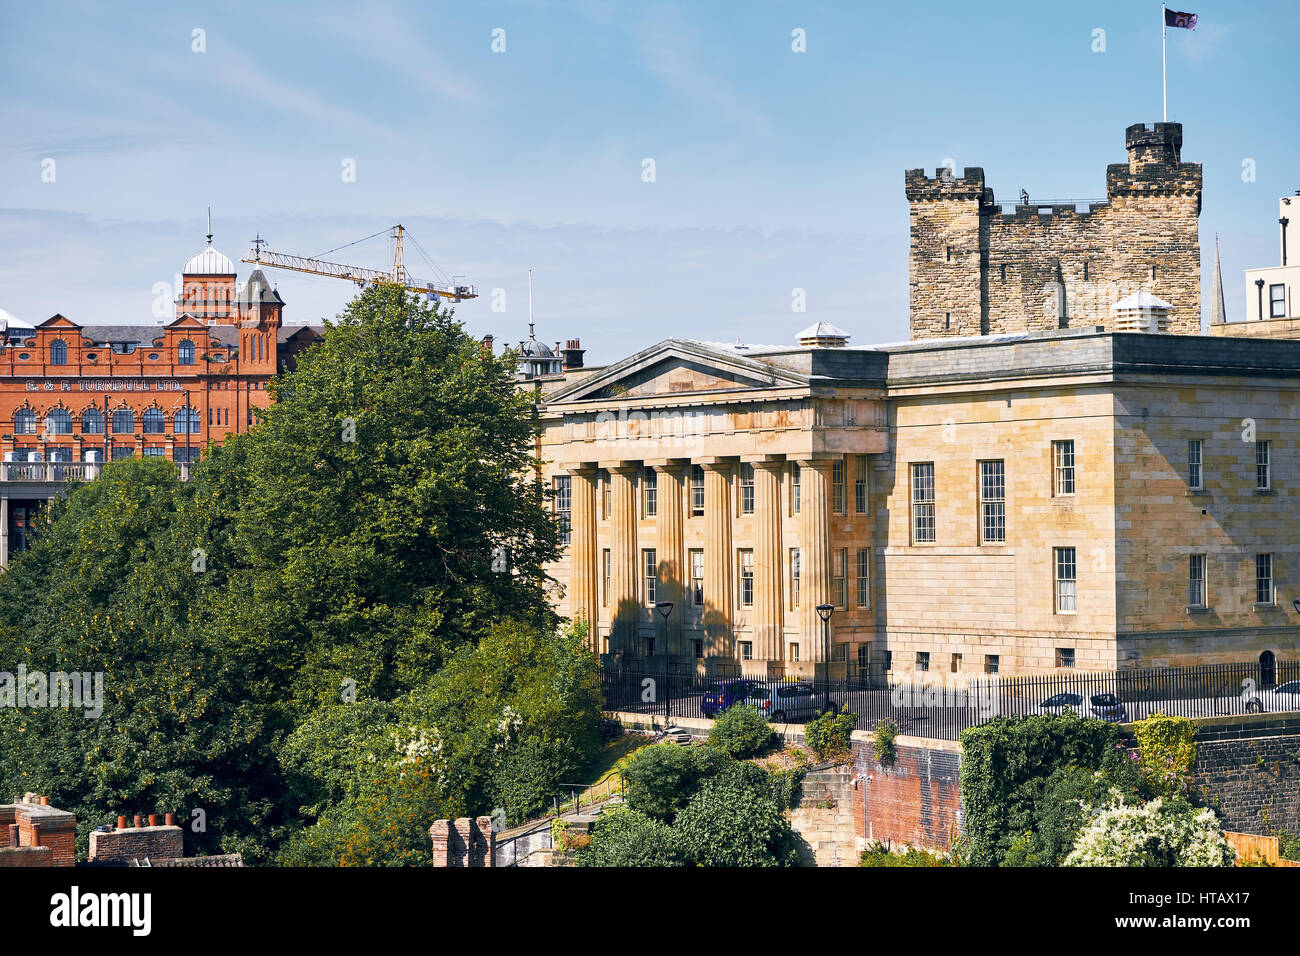 NEWCASTLE UPON TYNE, ENGLAND, UK - AUGUST 13, 2015: Views of the old Law Courts and Newcastle's Castle Keep. Stock Photo